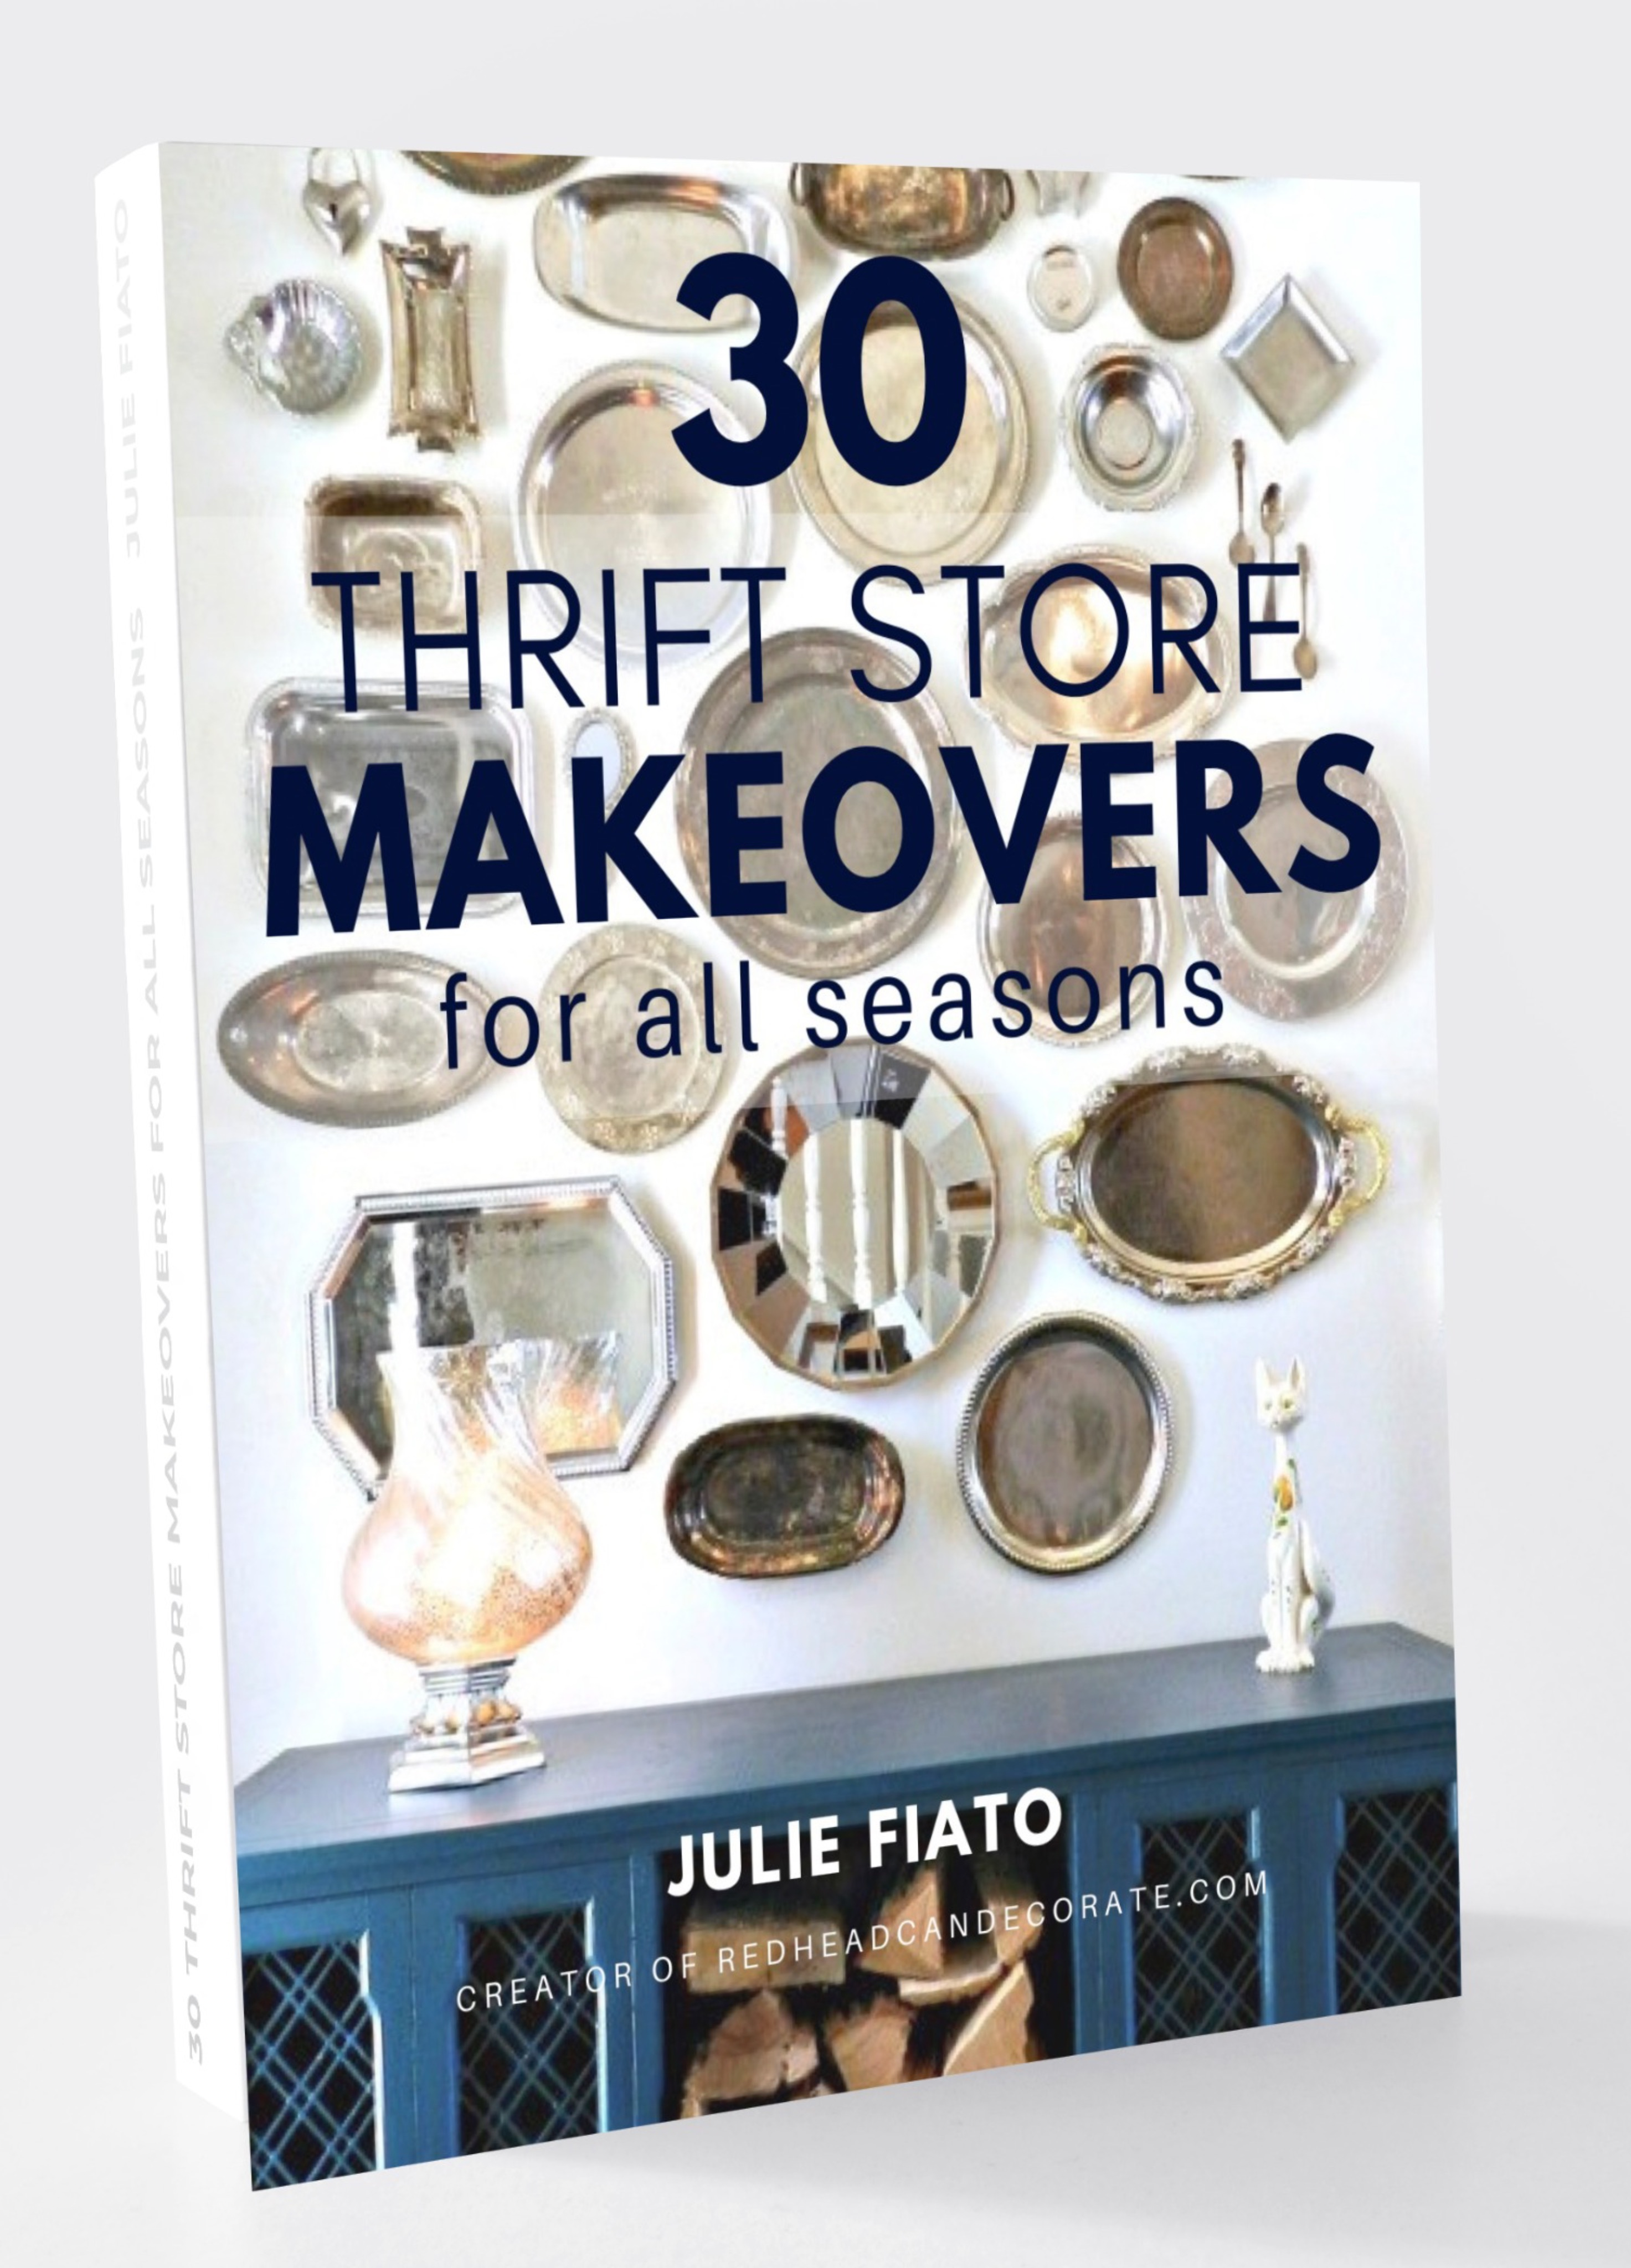 30 Thrift Store Makeovers for All Seasons